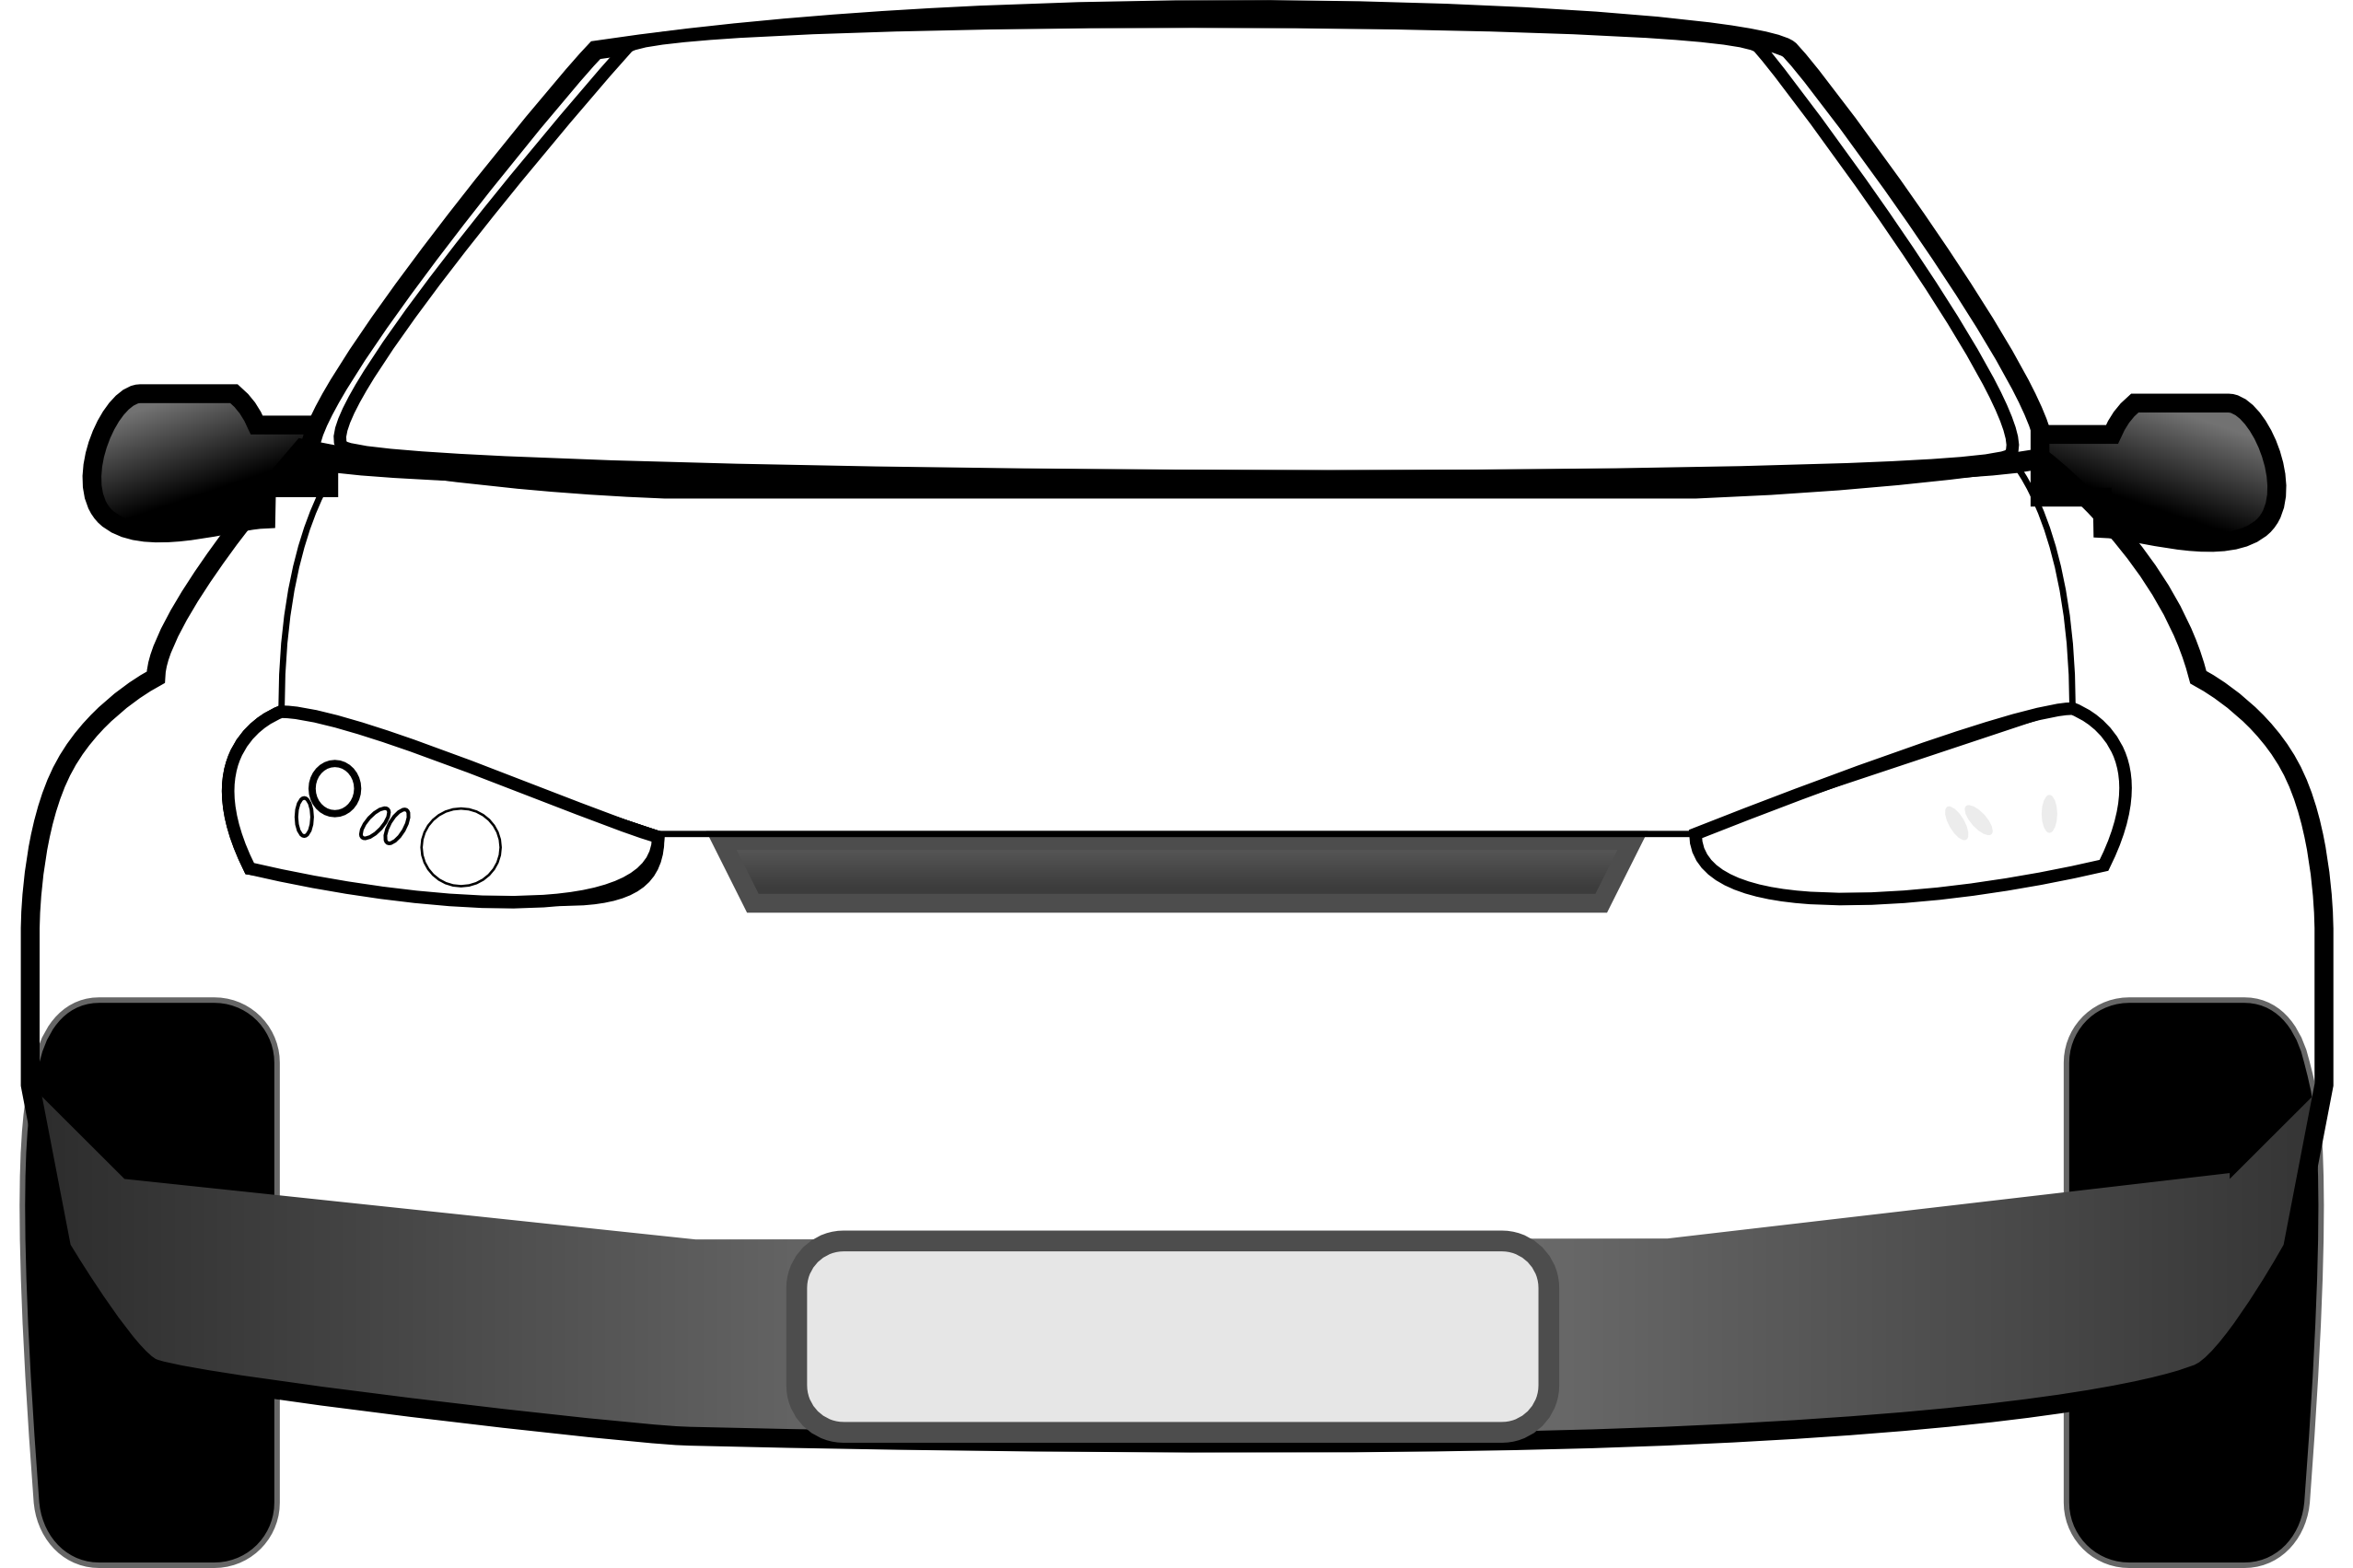 Car front clipart black and white png car front black white line   Clipart Panda - Free Clipart Images png